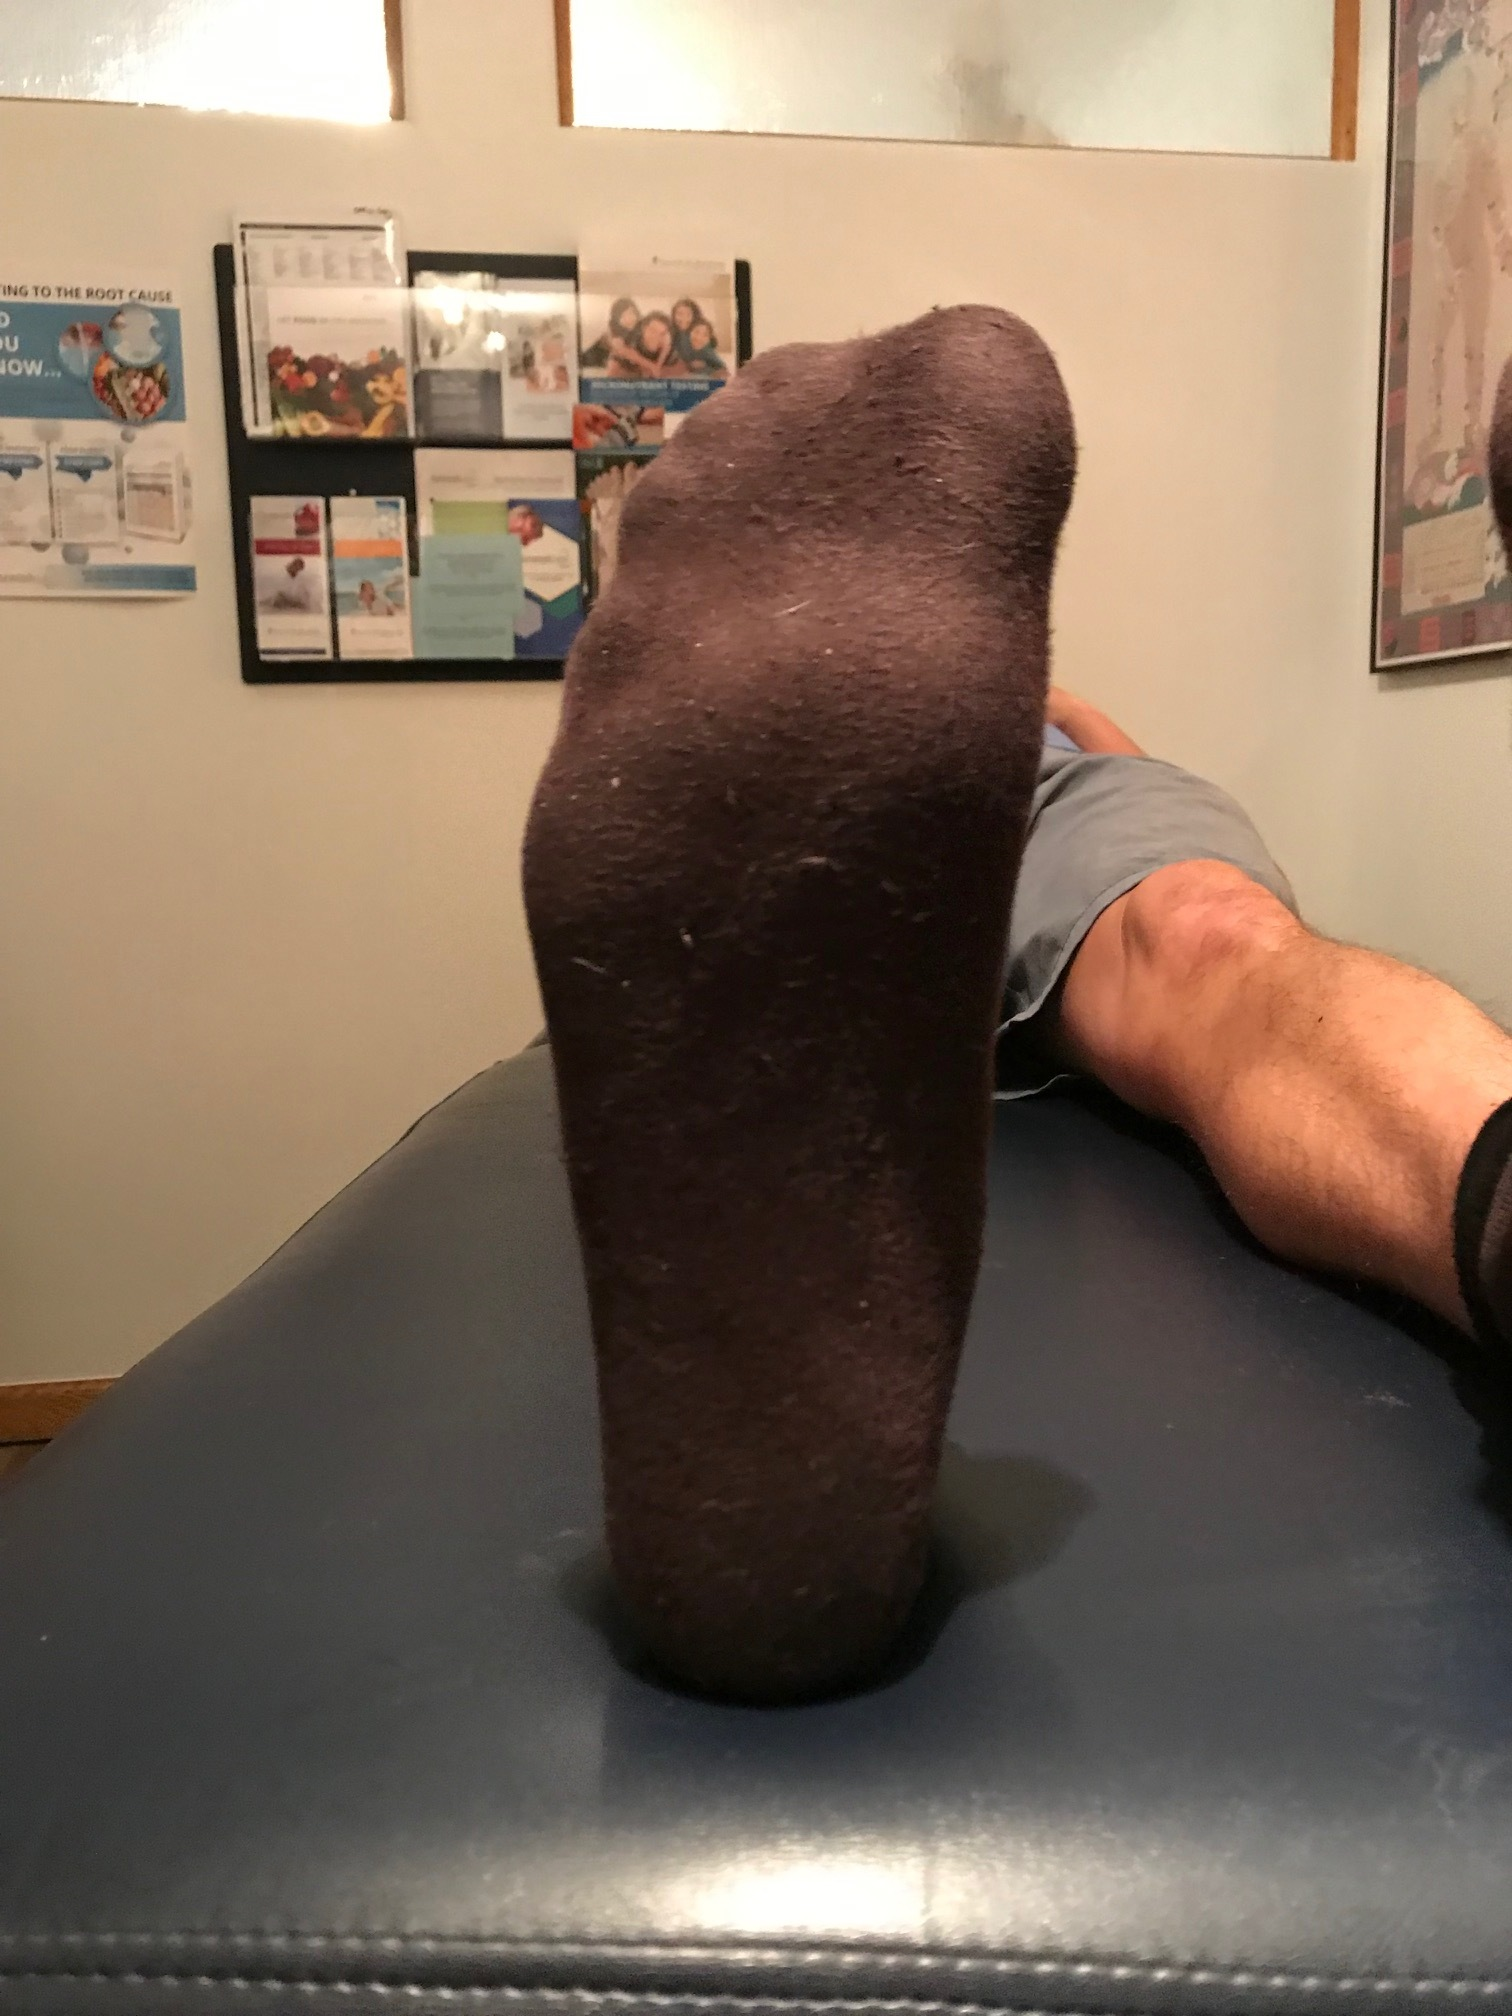 bisect the calcaneus. the line should fall though the 2nd metatarsal or between the 2nd and 3rd met shafts